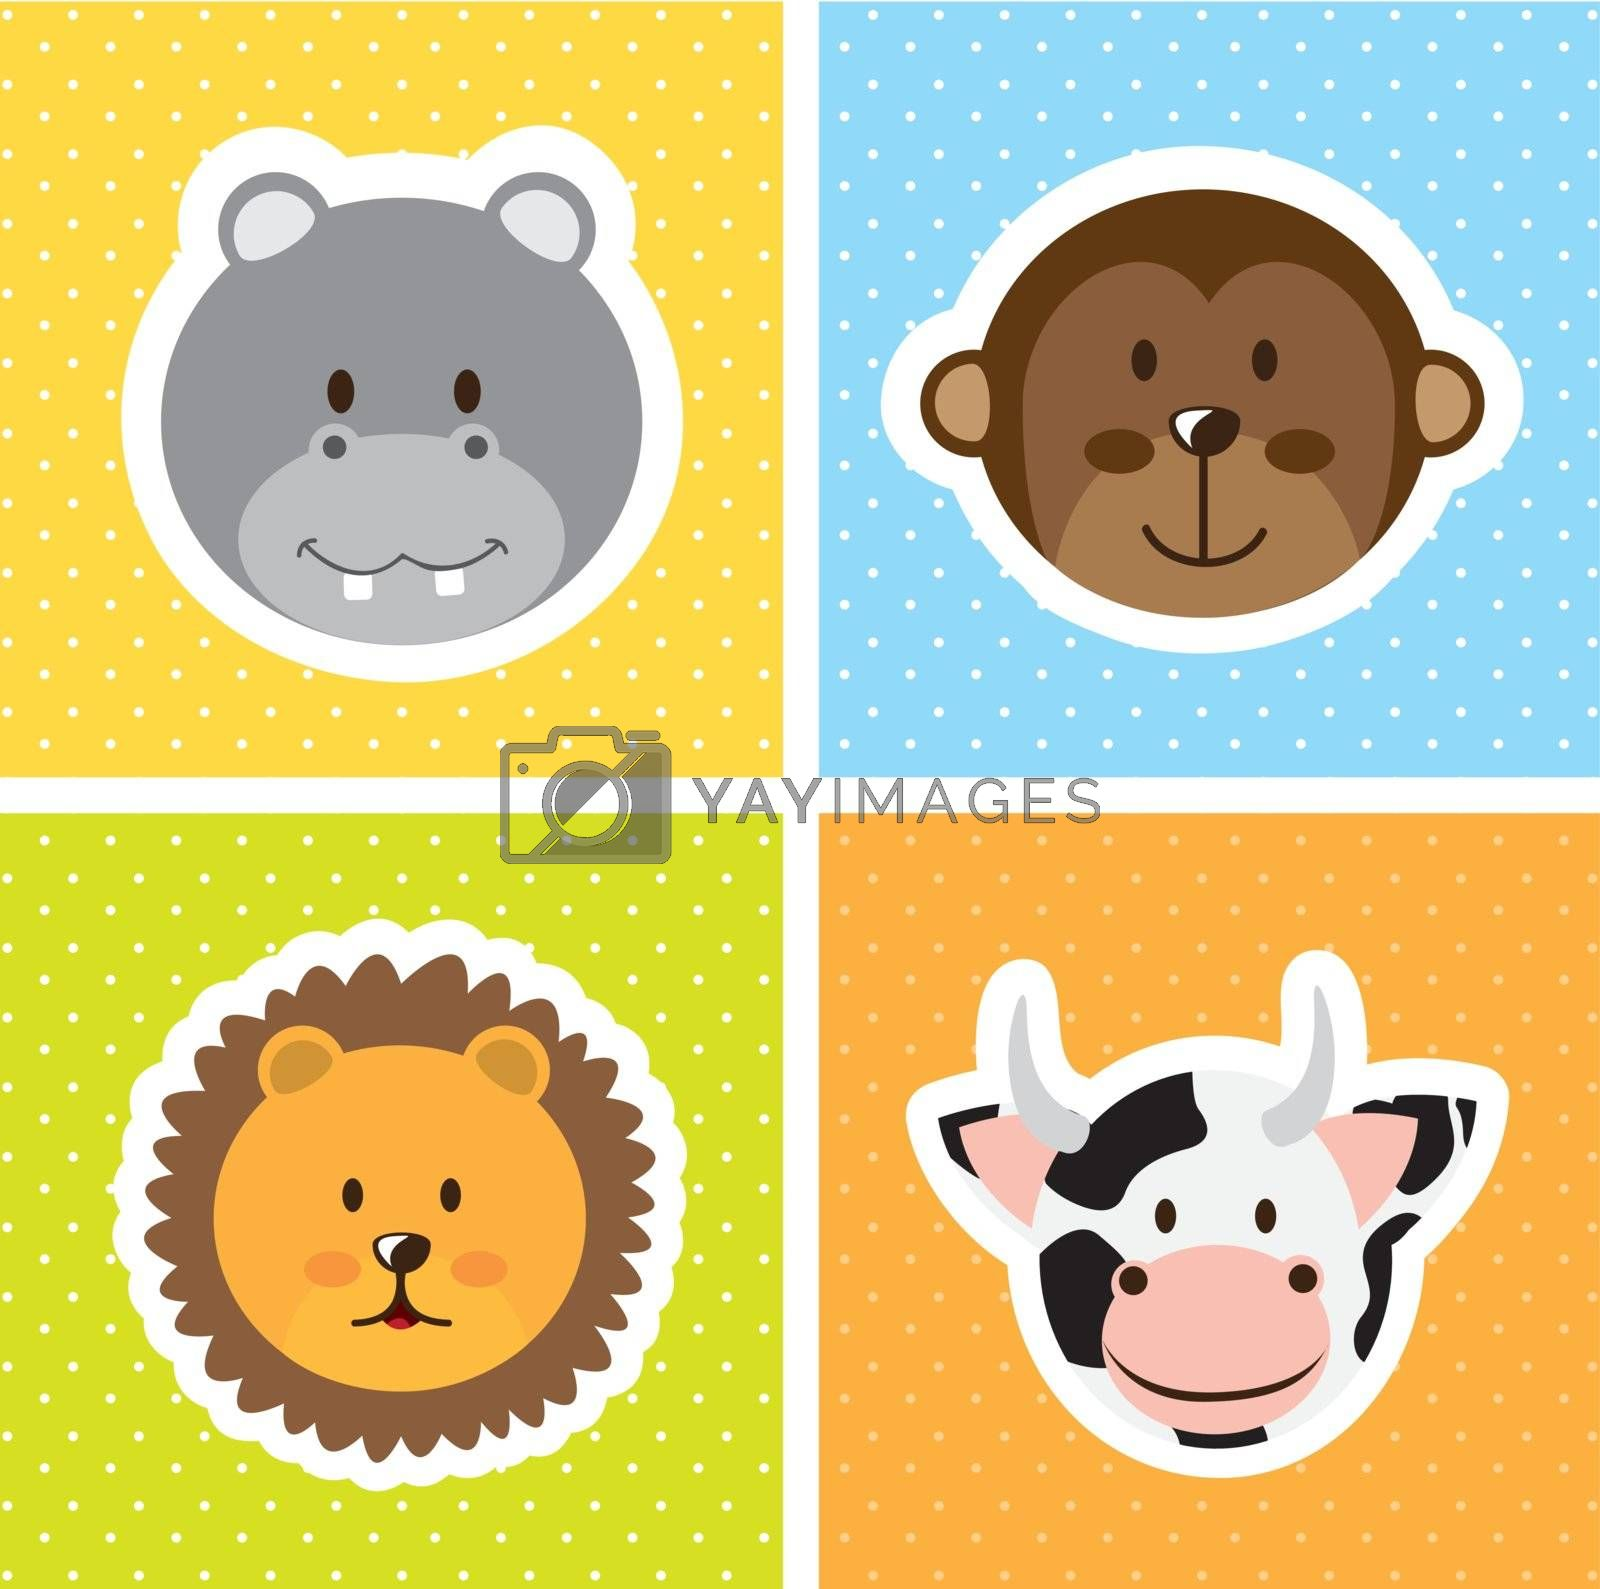 cute animals faces over squares. vector illustration